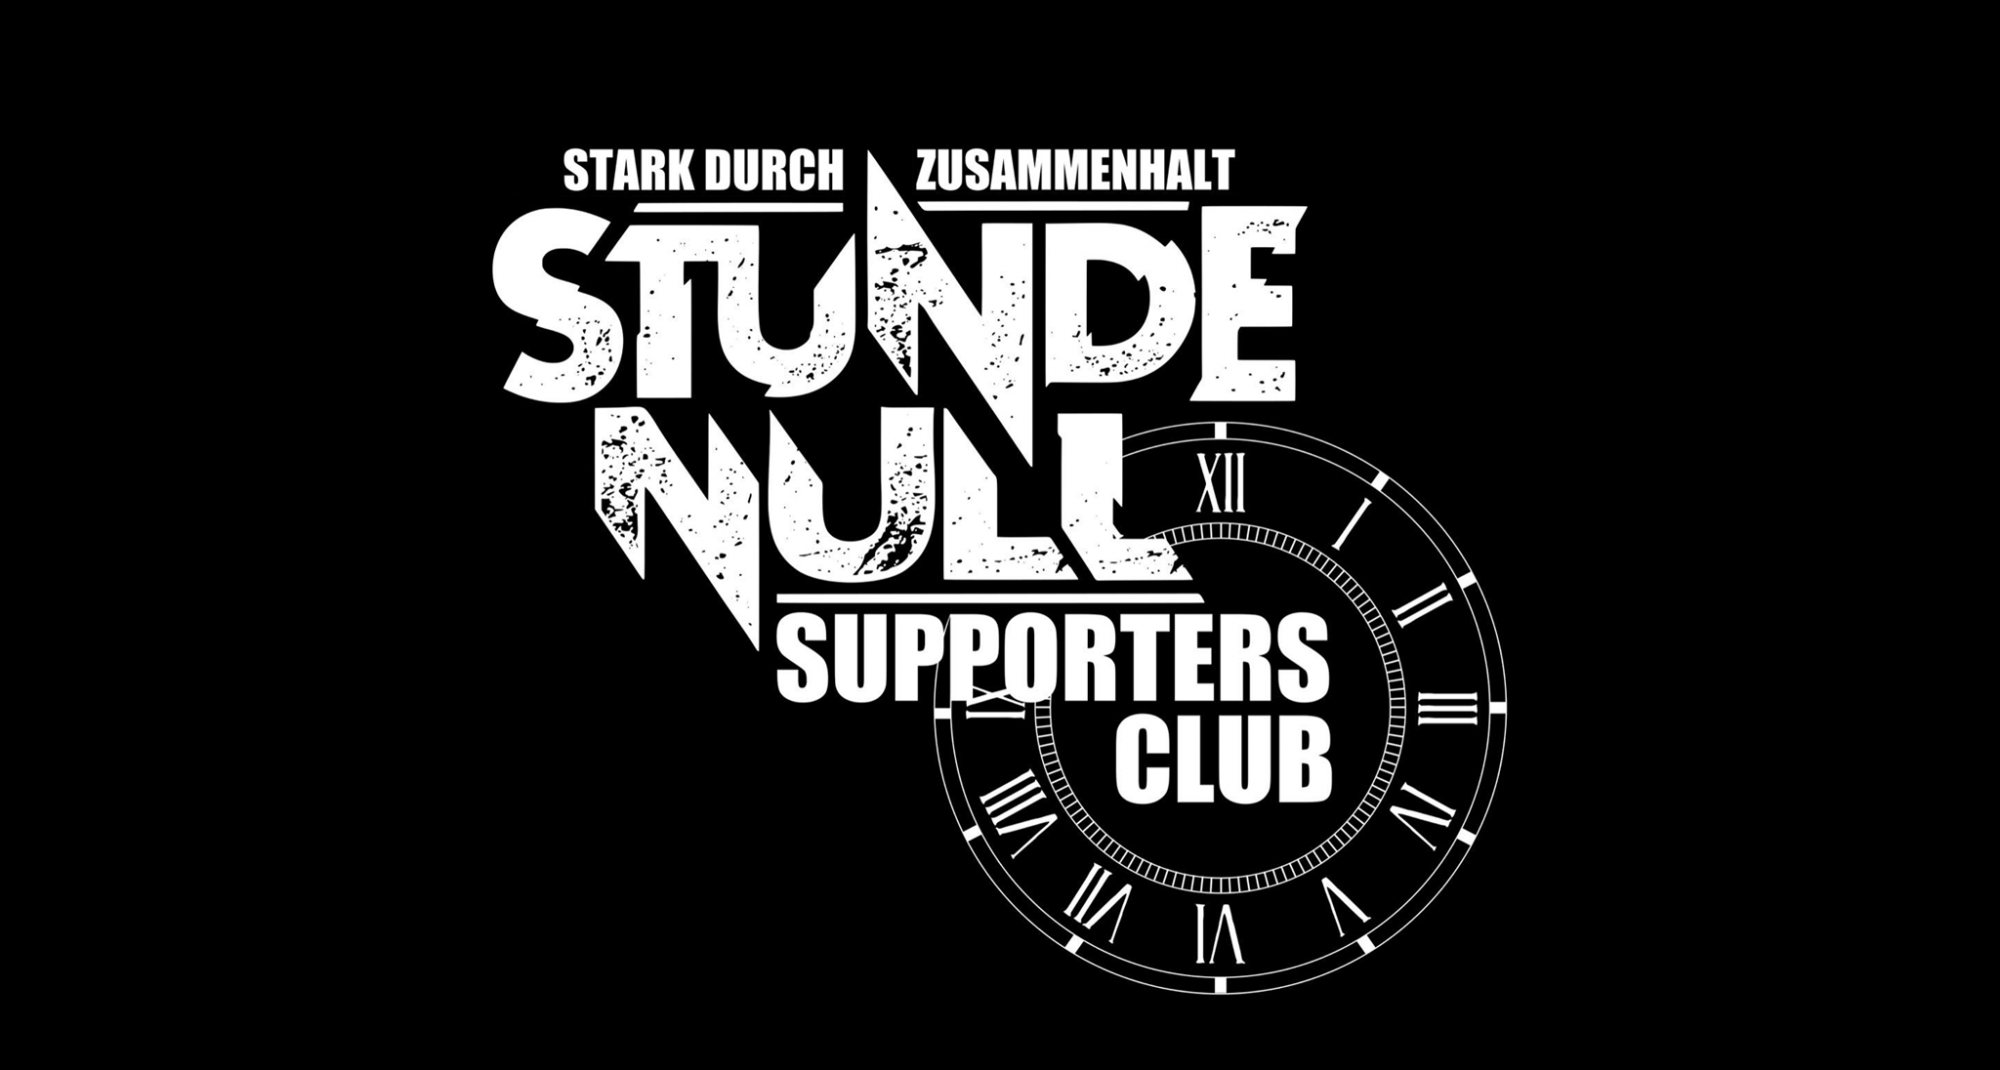 Stunde Null Supporters Club